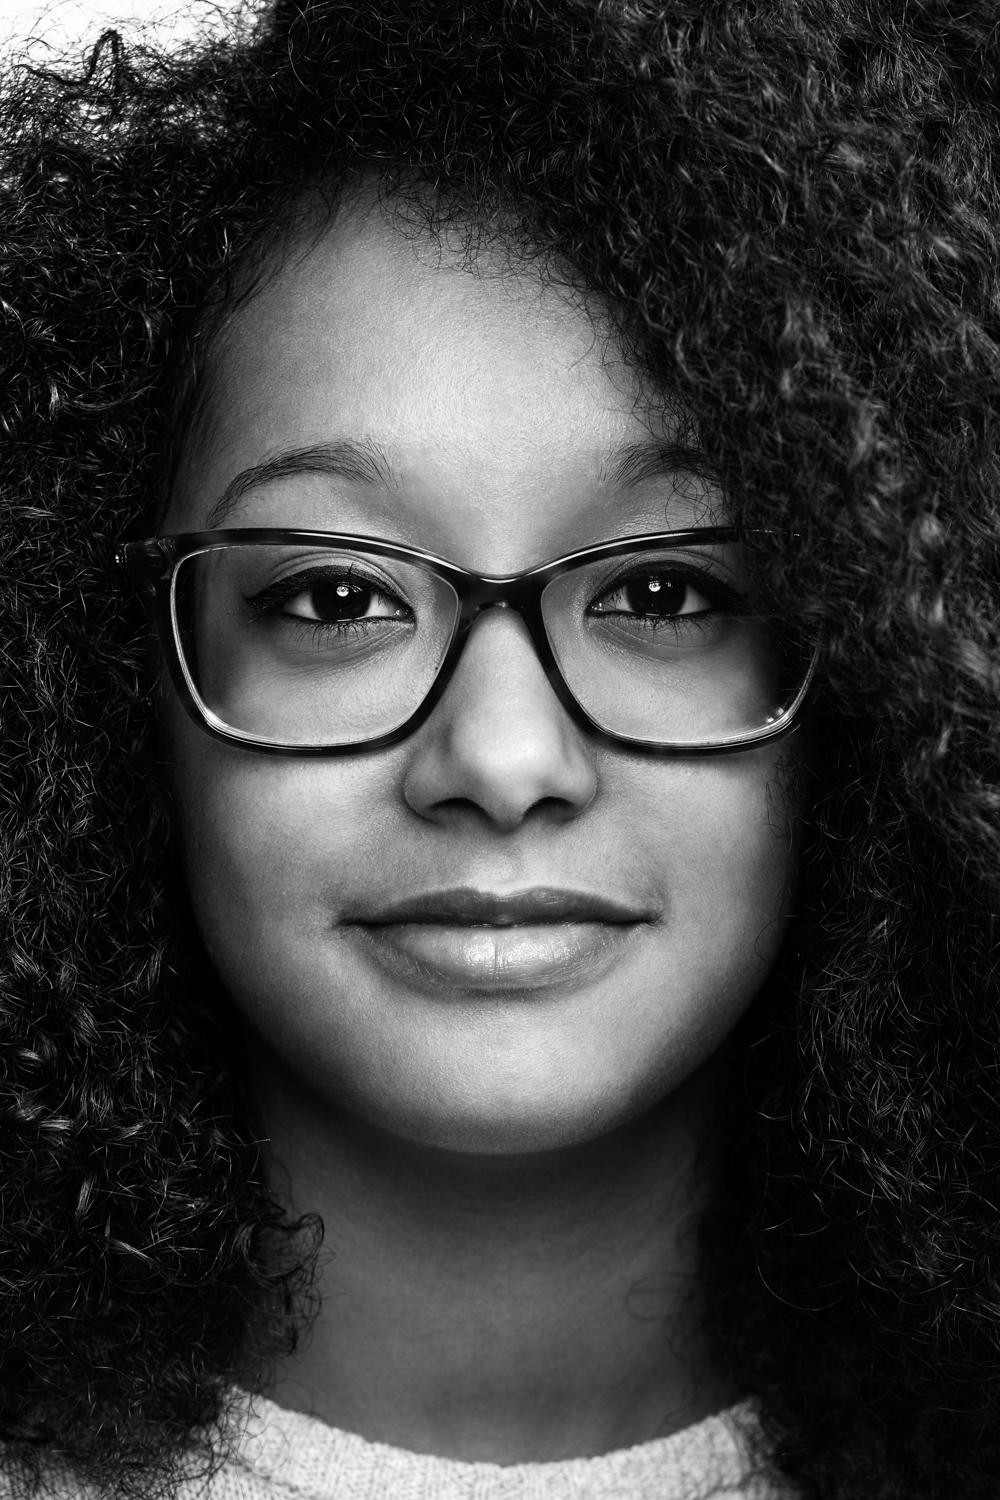 Woman on white background, studio photography, black and white portraits, black girl, girl with glasses